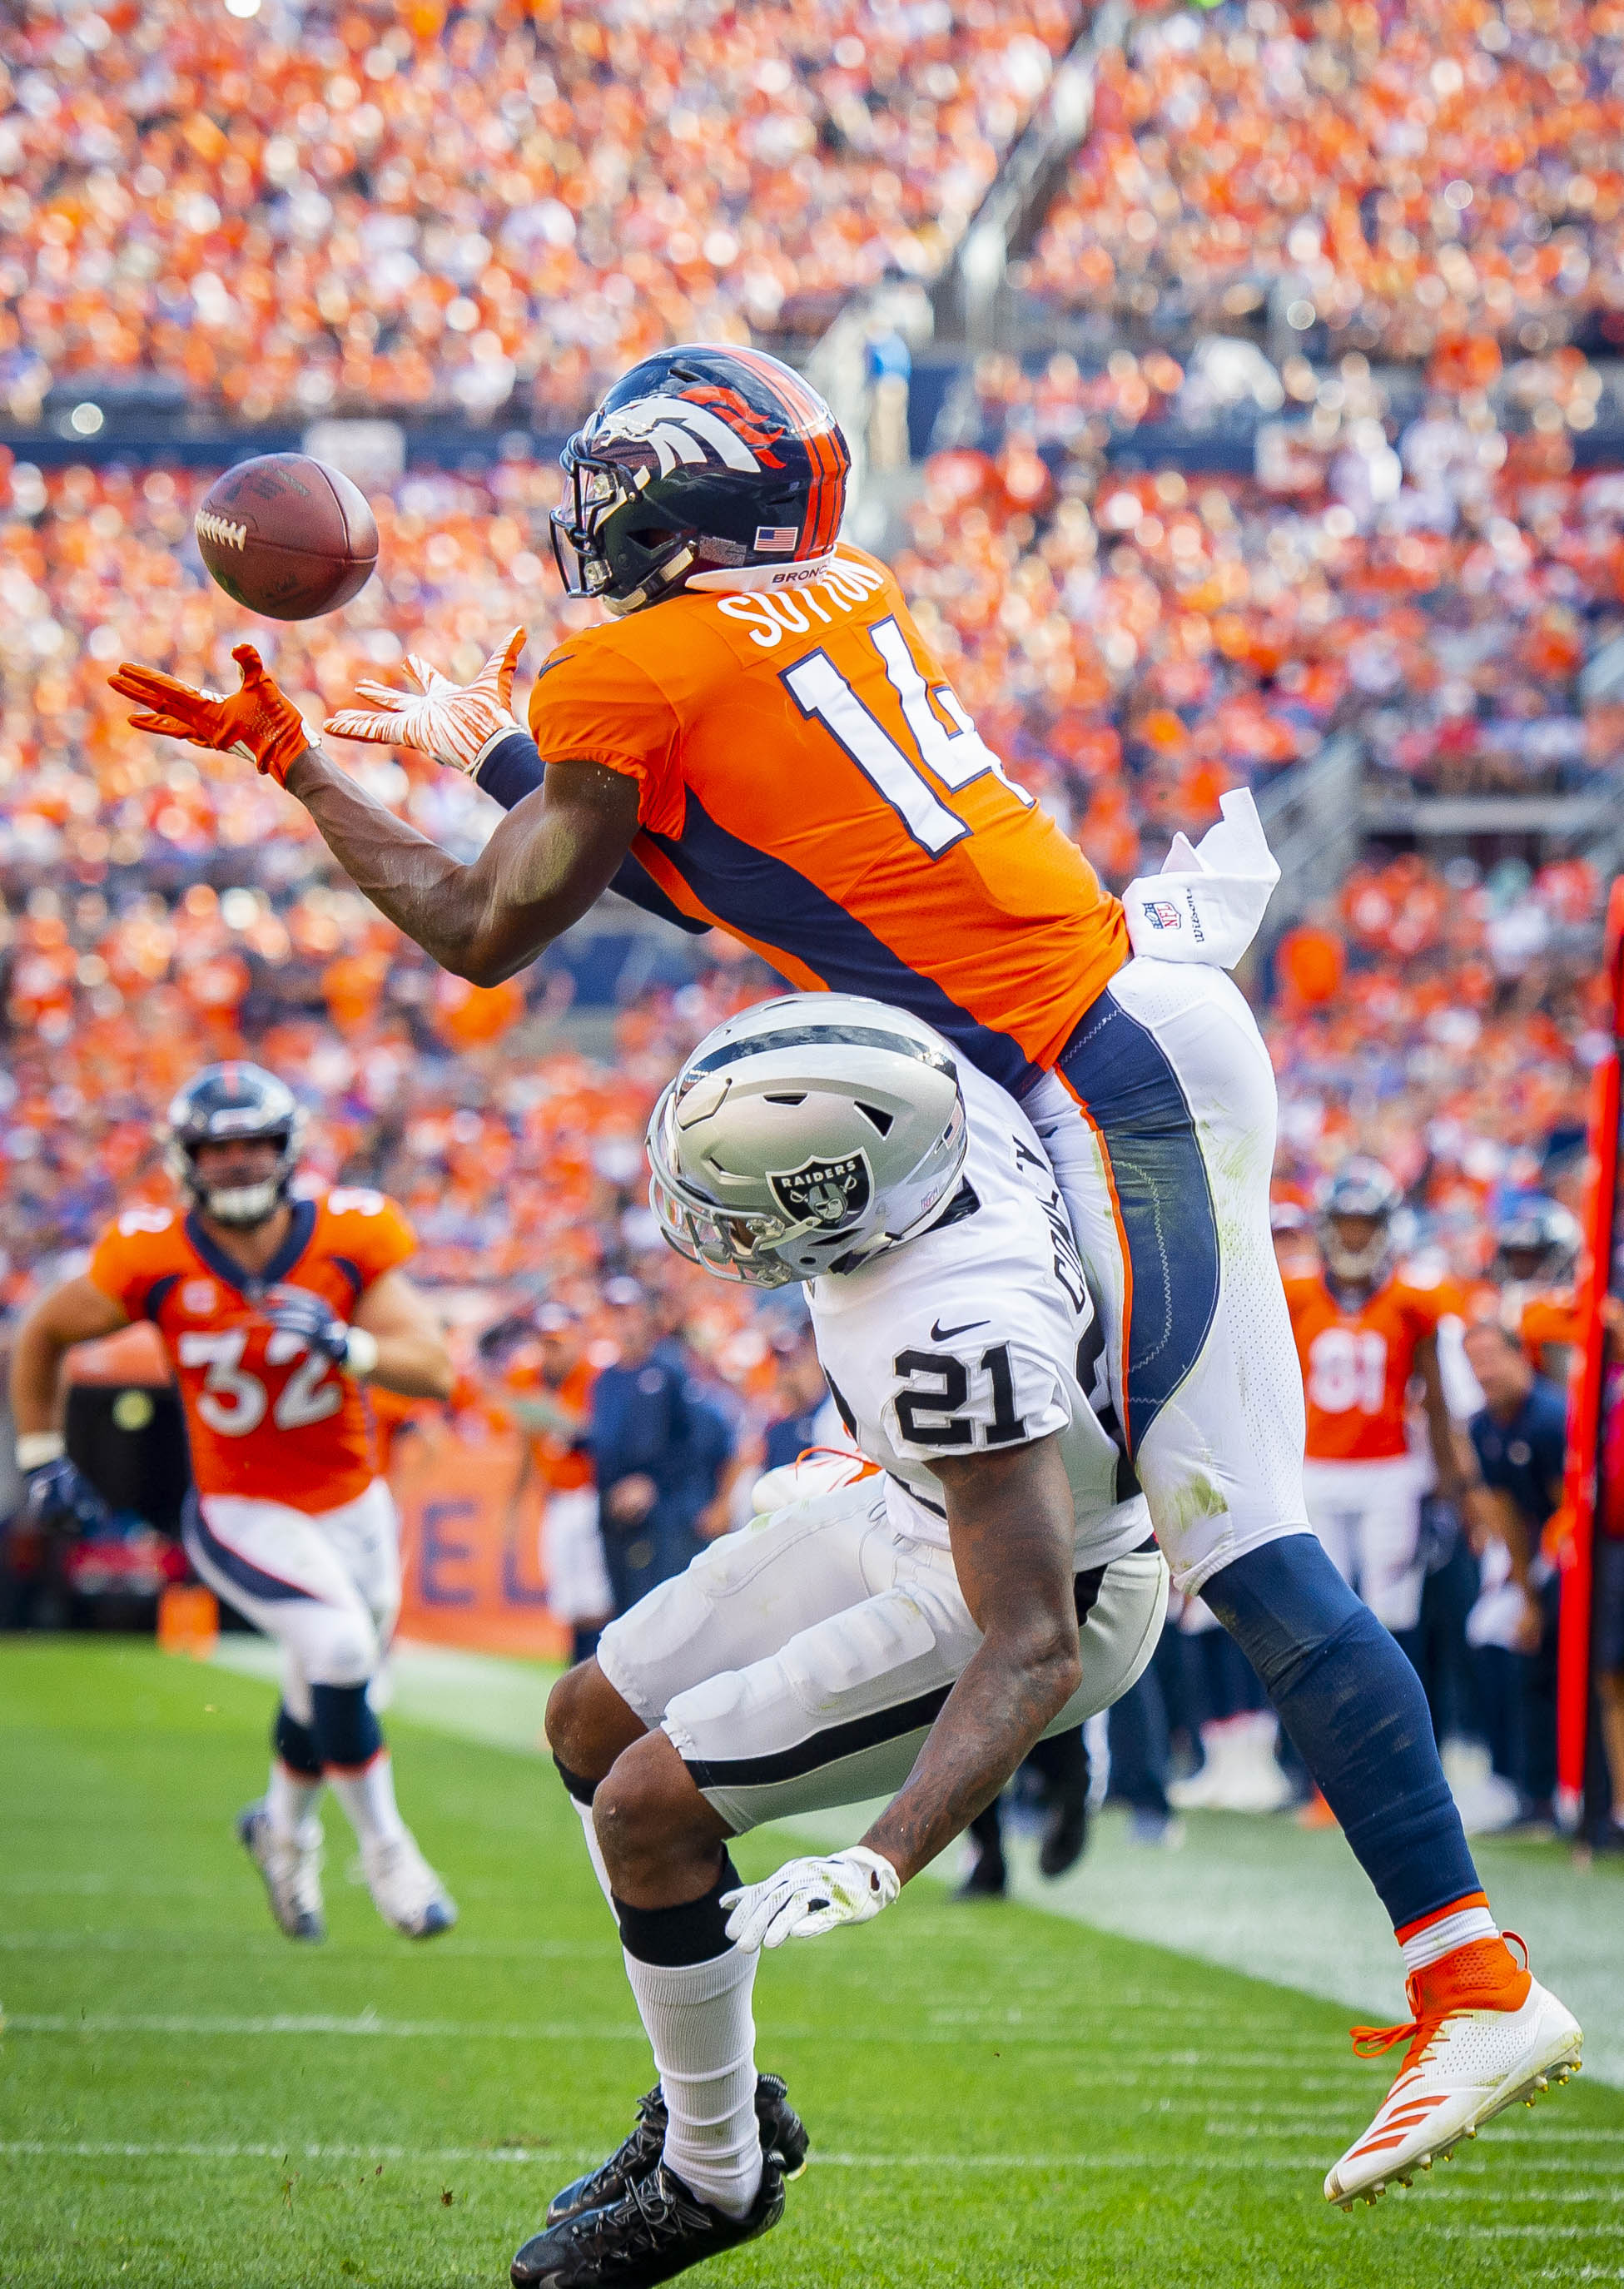 ... (14) catches the ball from quarterback Case Keenum as the ball was  ruled incomplete and not a touchdown against the Oakland Raiders in the  third quarter ... c6d4e207b